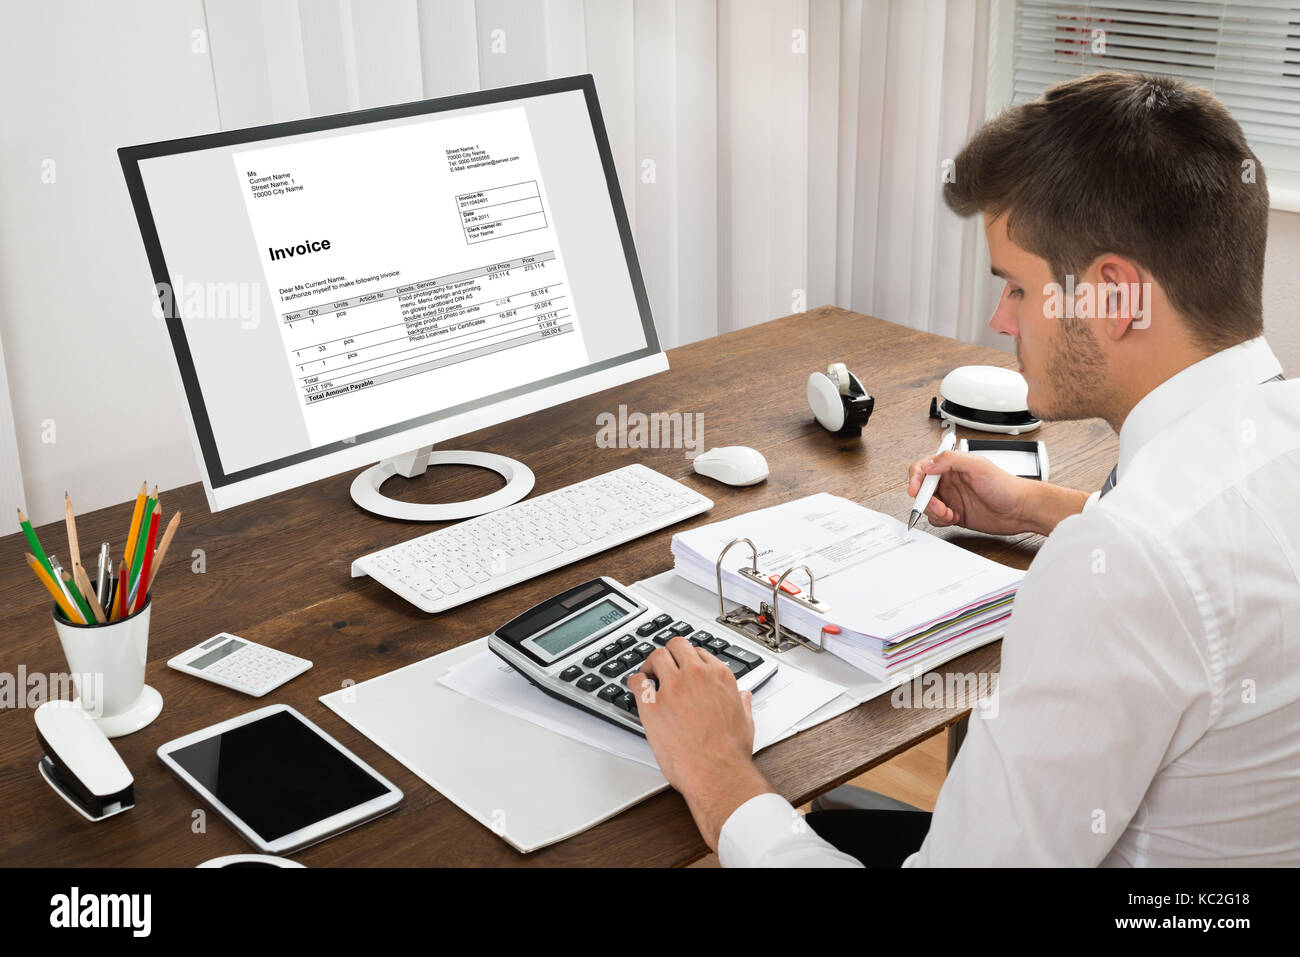 Male Accountant Calculating Tax In Front Of Computer At Desk Stock Photo -  Alamy